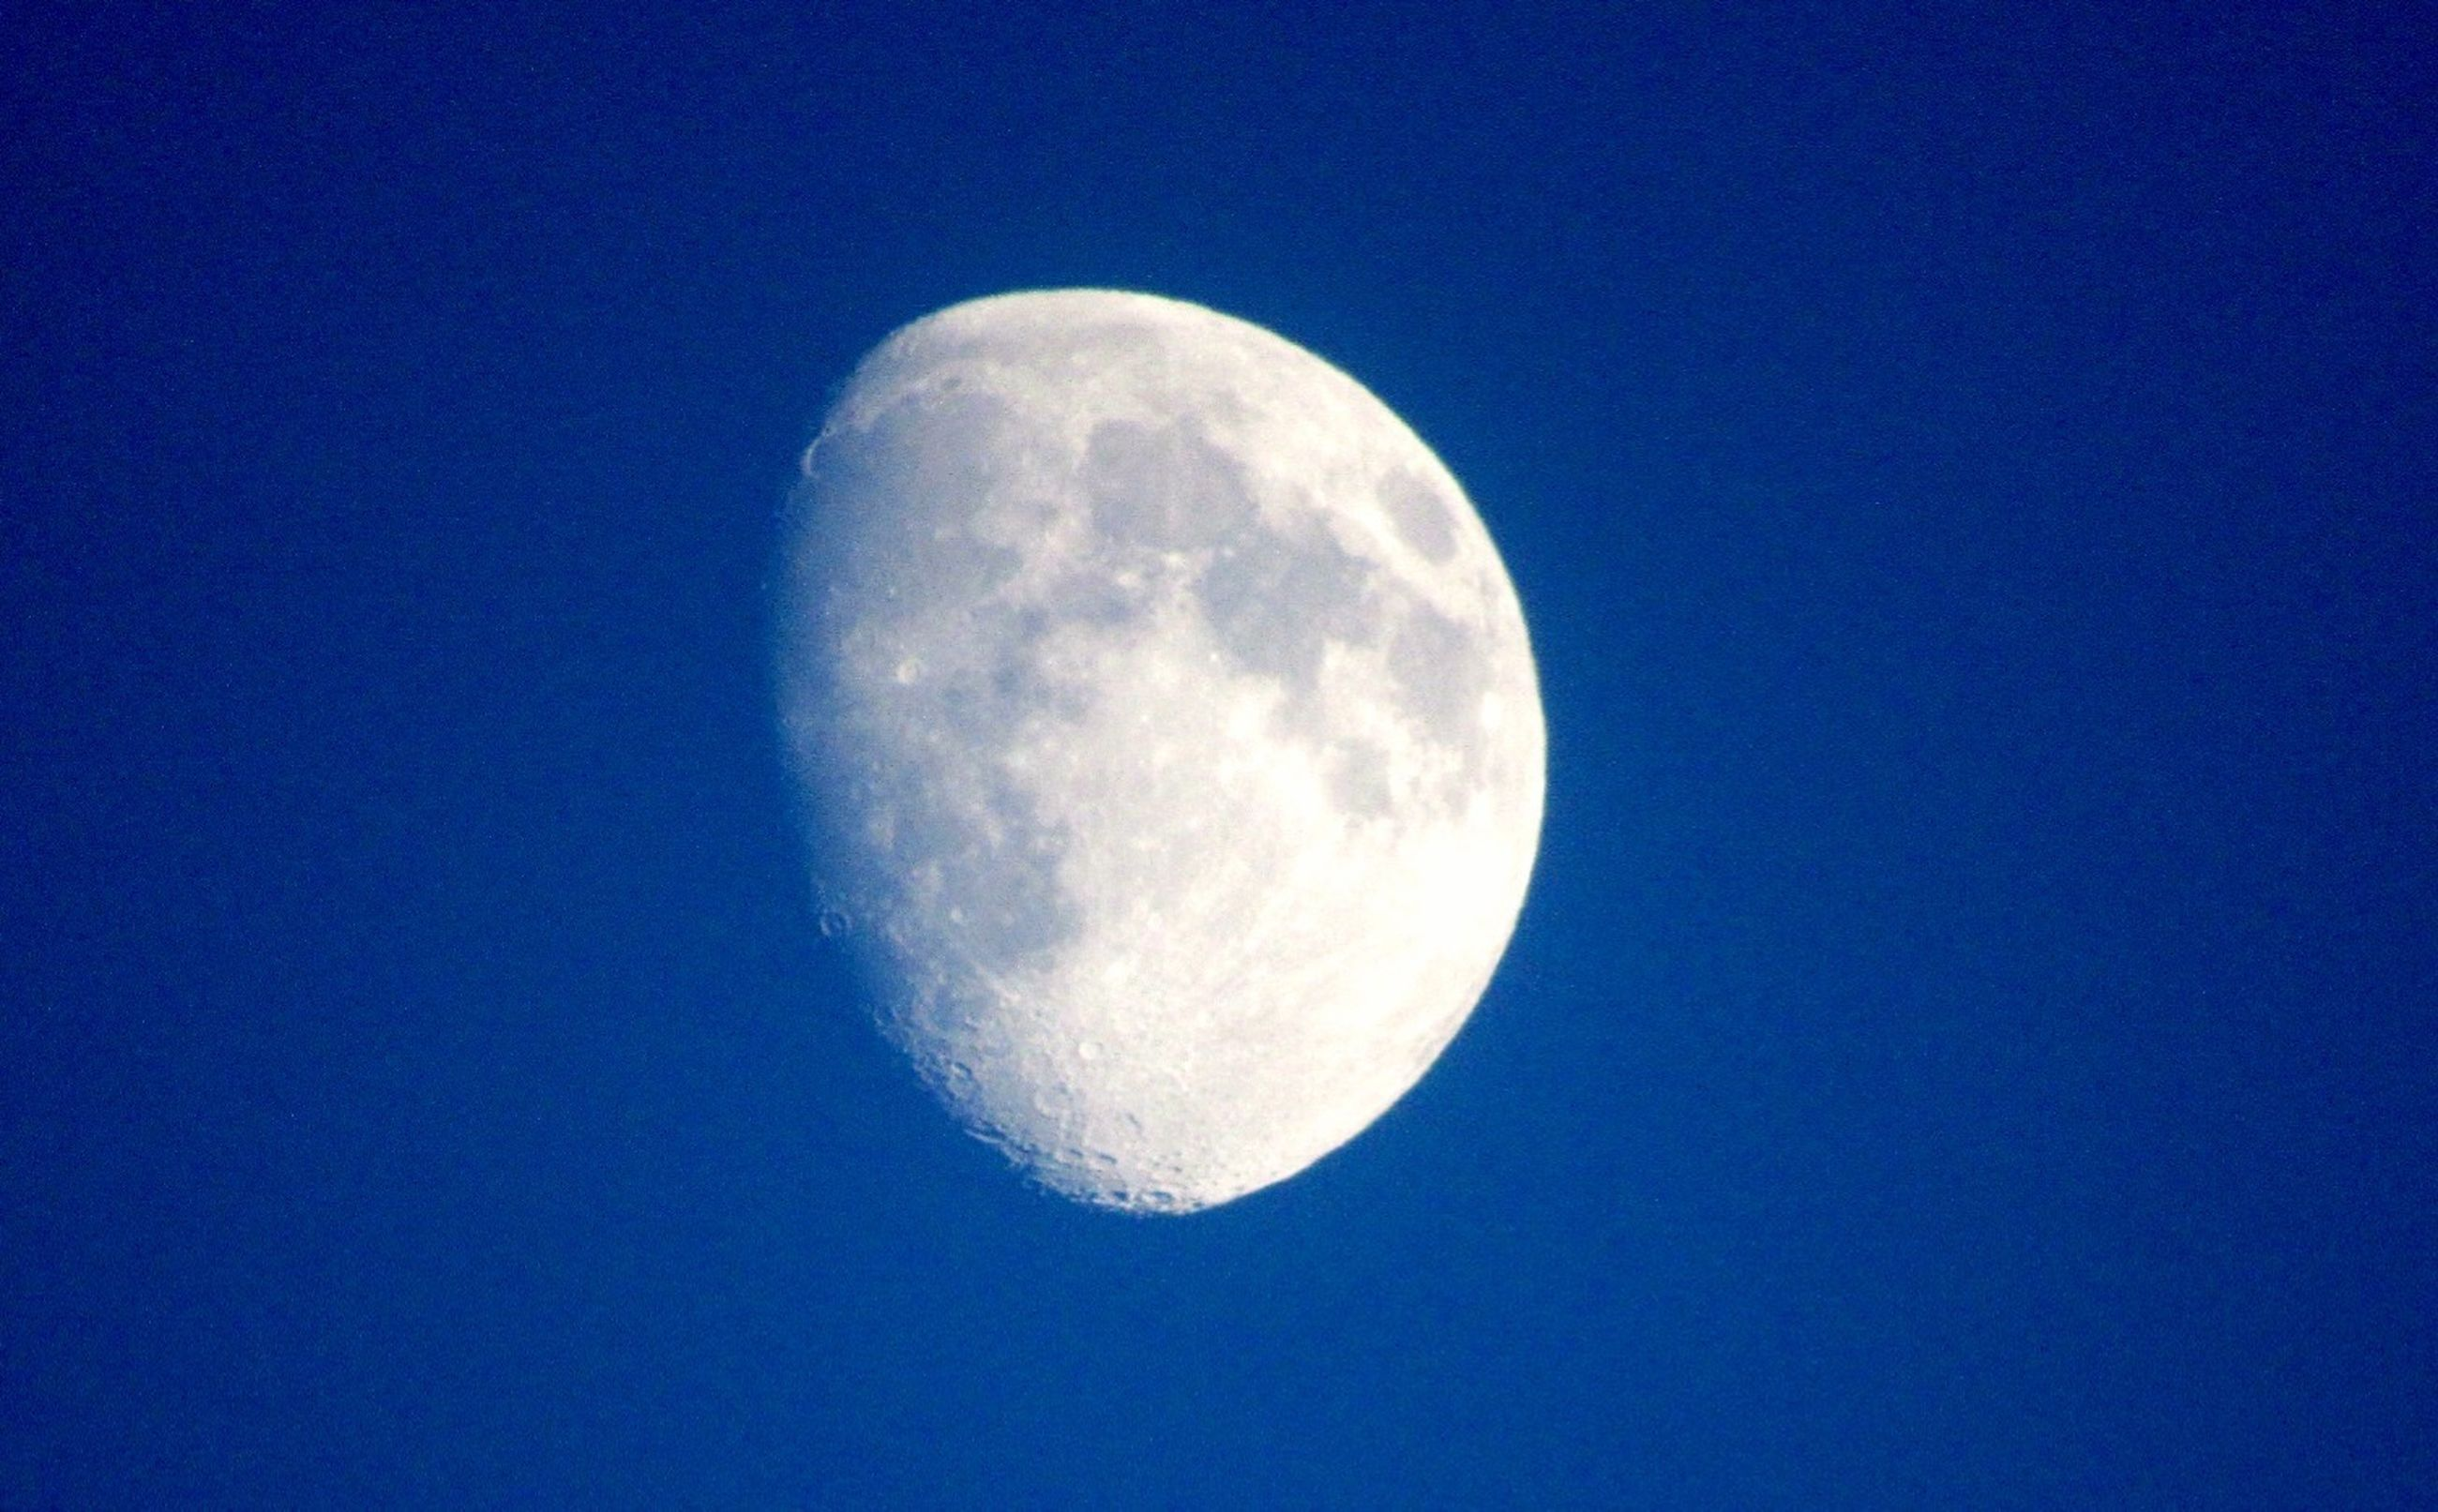 moon, blue, beauty in nature, scenics, clear sky, astronomy, low angle view, tranquil scene, night, tranquility, nature, planetary moon, majestic, moon surface, idyllic, close-up, full moon, sky, space exploration, outdoors, sky only, exploration, space, no people, astrology, geometric shape